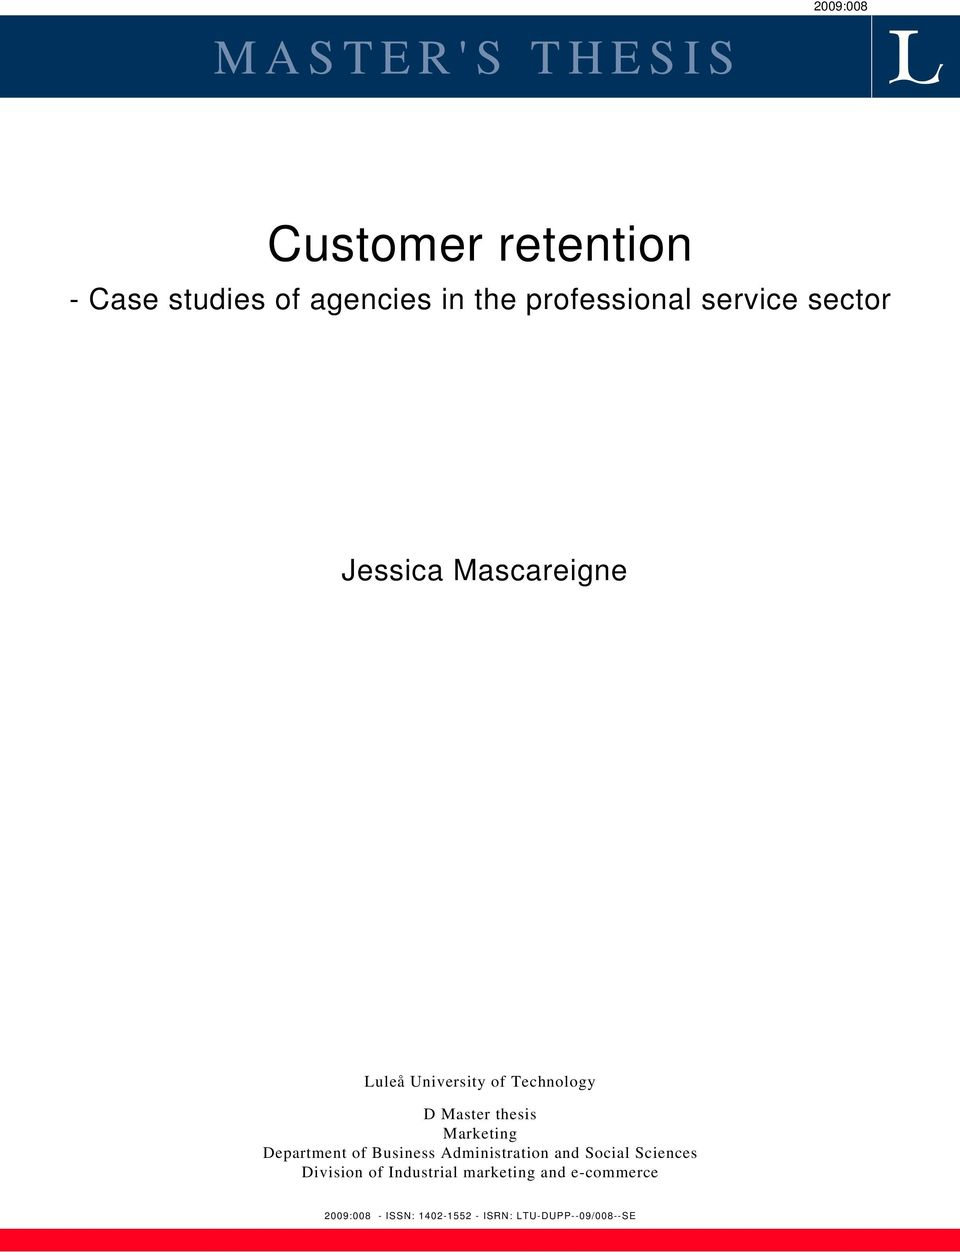 Customer retention thesis